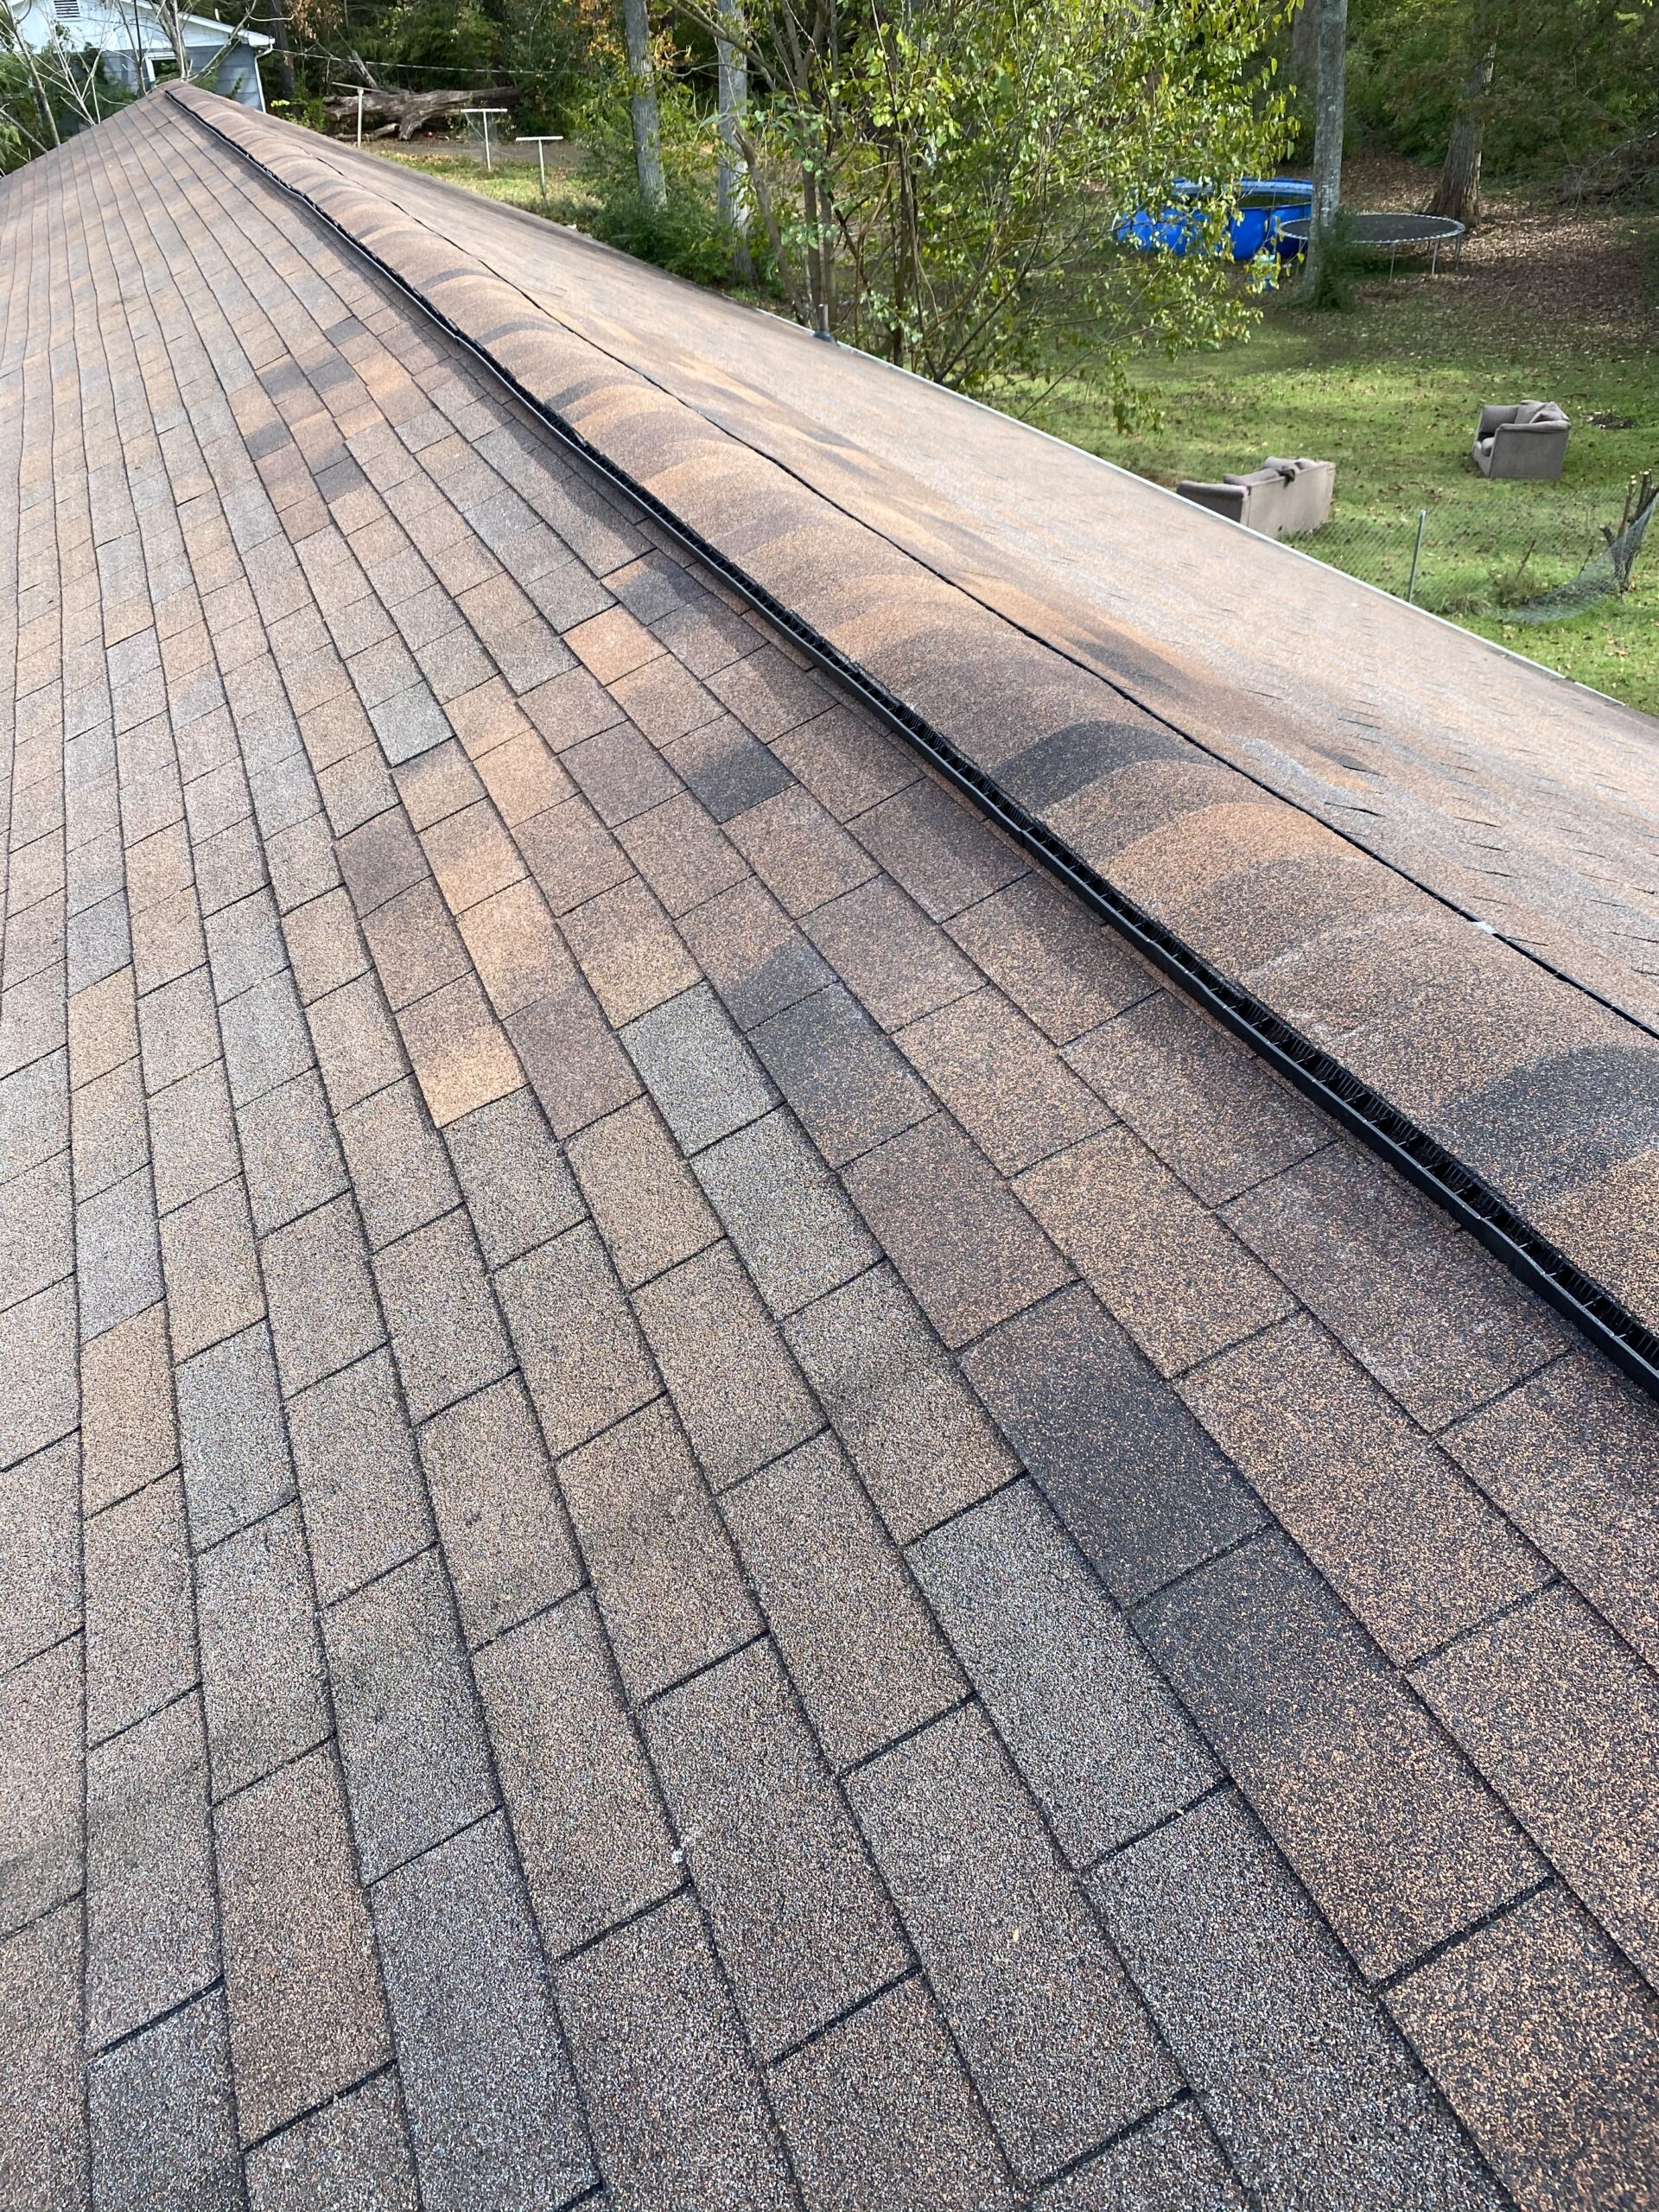 Replaced boards and ahingles at the ridge of the roof and there is a new ridge vent here